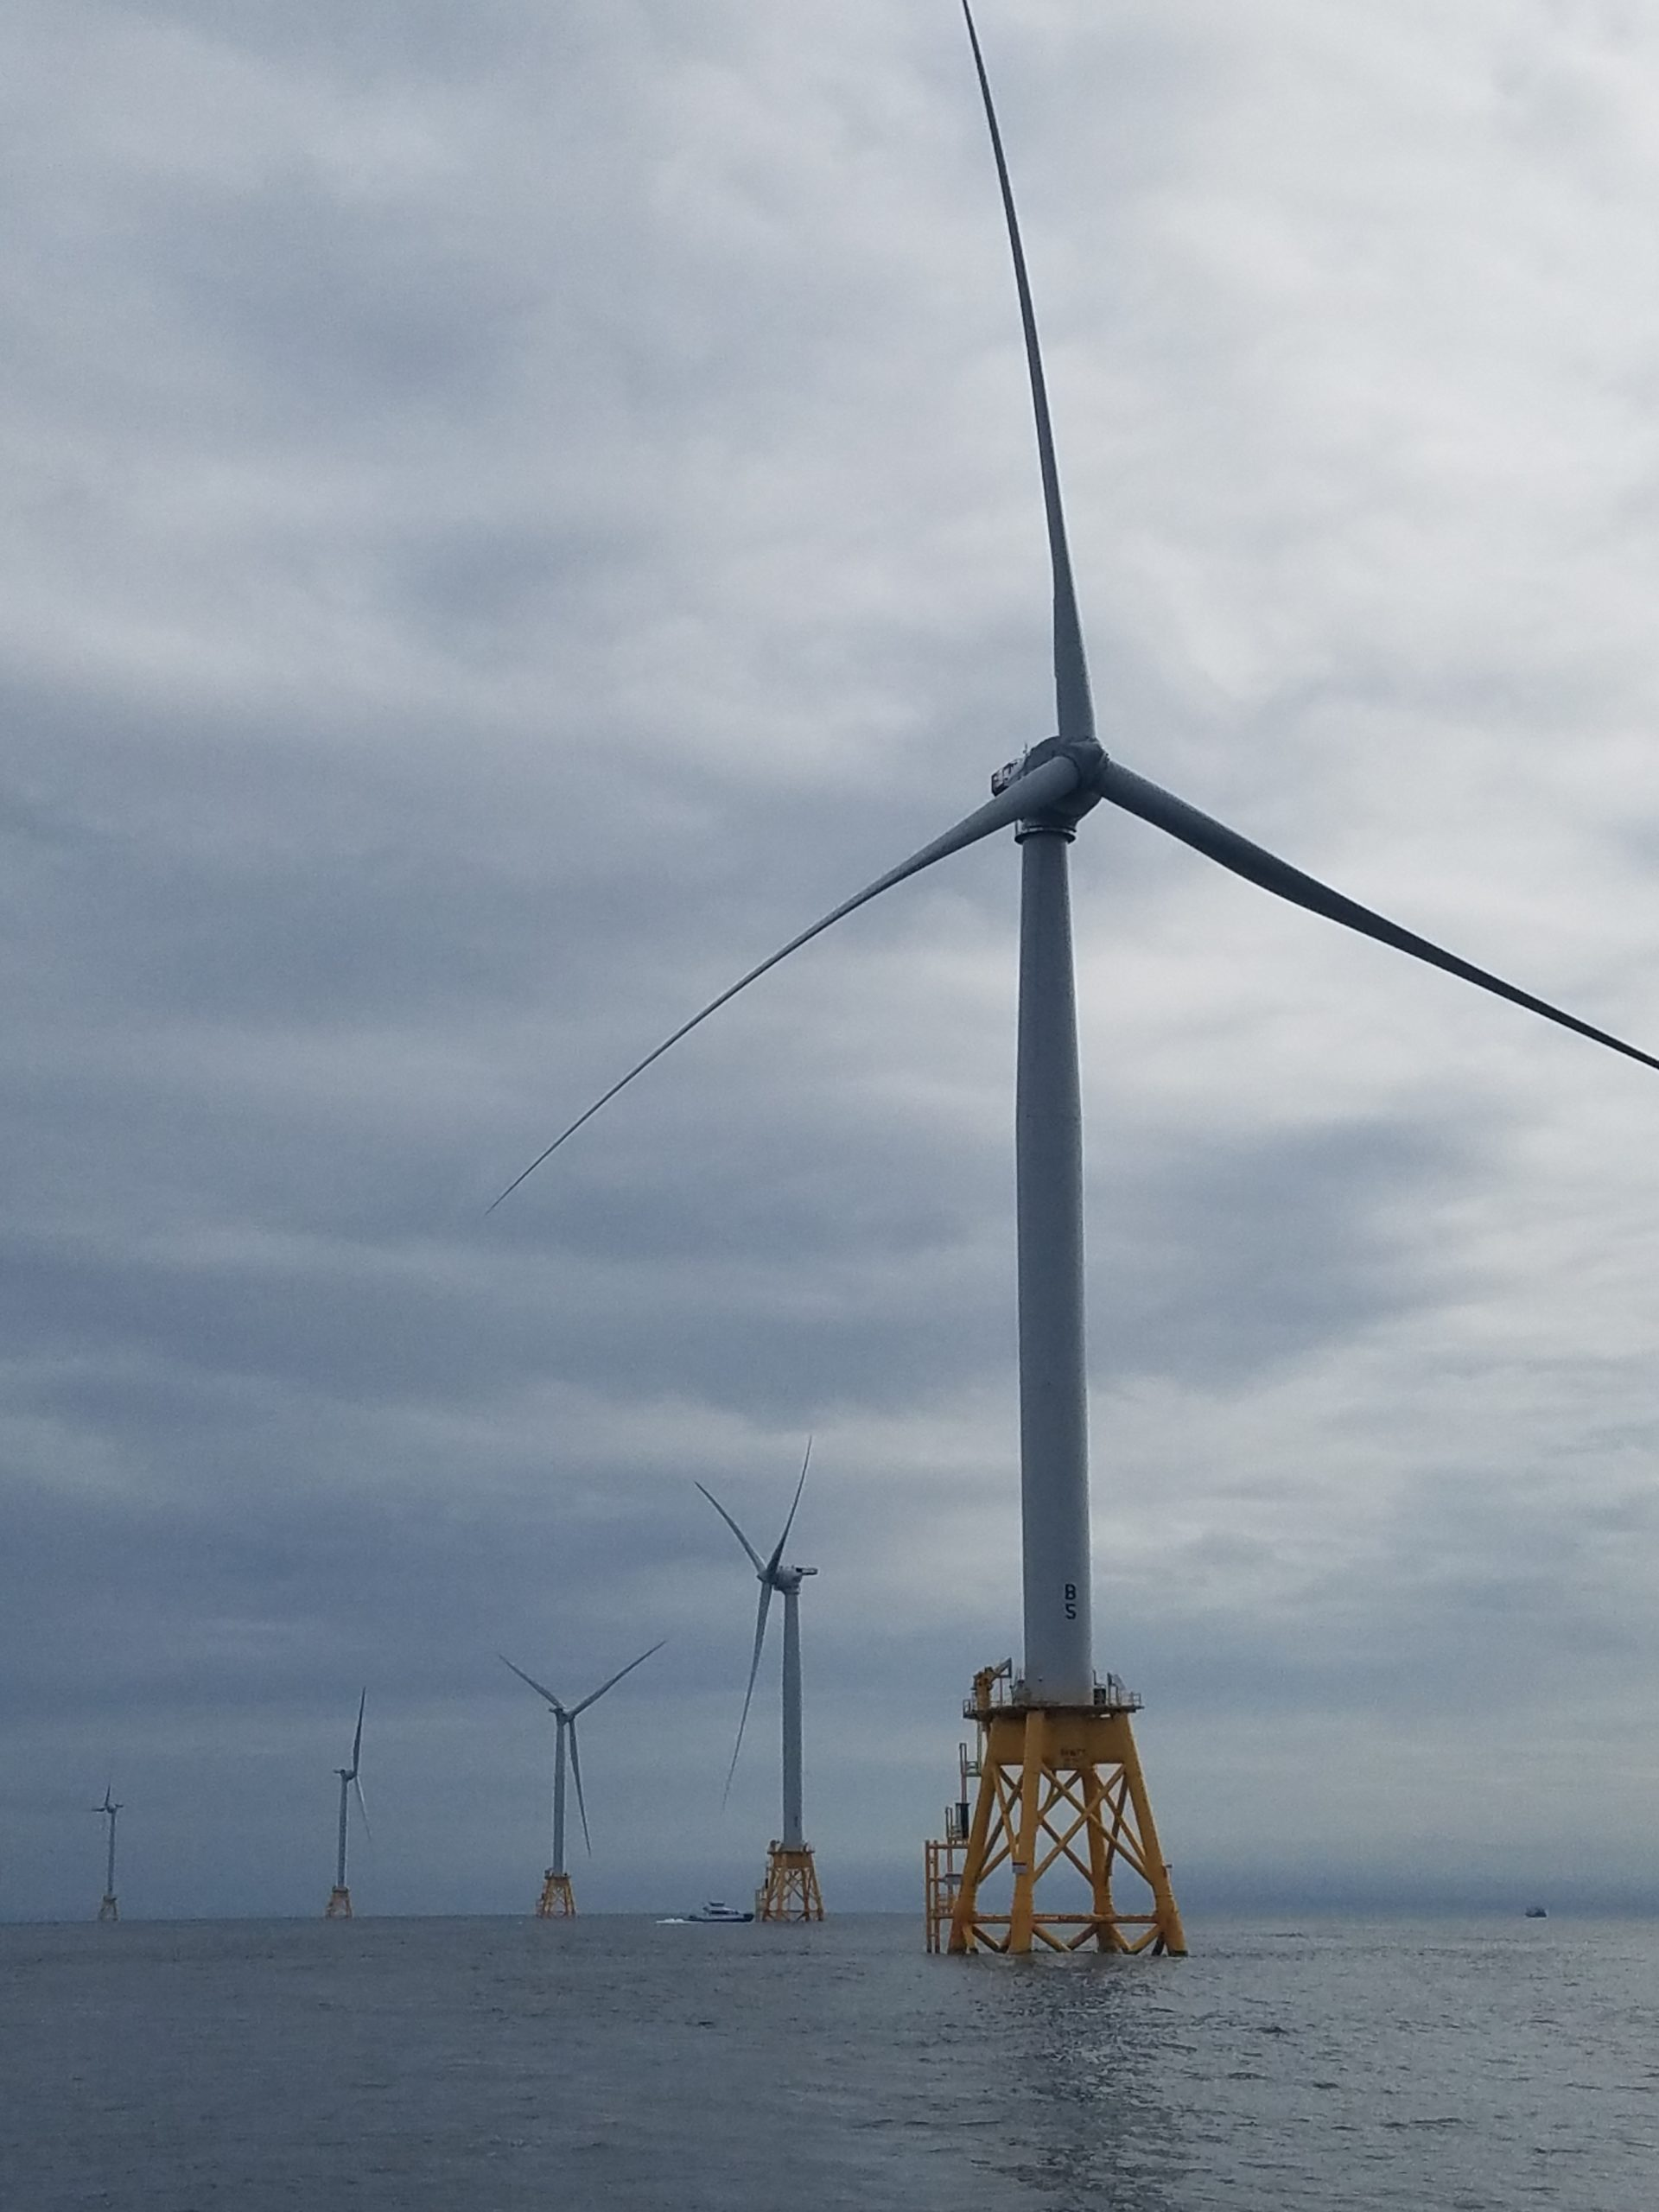 The five-turbine Block Island Wind Farm will remain the nation's only offshore wind farm for a while longer after Deepwater Wind said it is pushing back the expected time frame for its other applications for new wind farms off Martha's Vineyard because of the coronavirus epidemic.